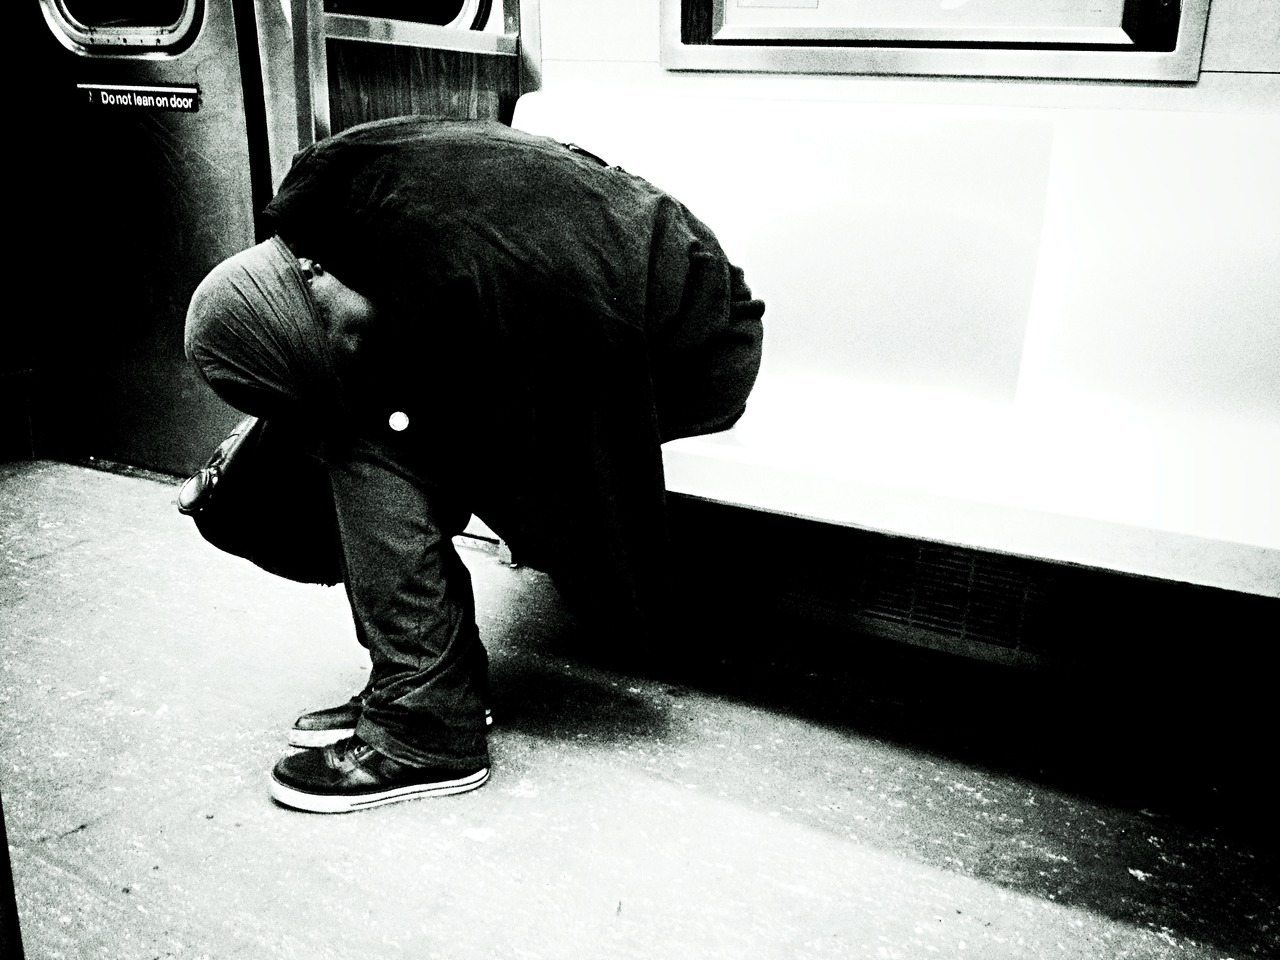 Pray Mantis on C-Train #peppersearching #pepper #photos #homeless #train #c